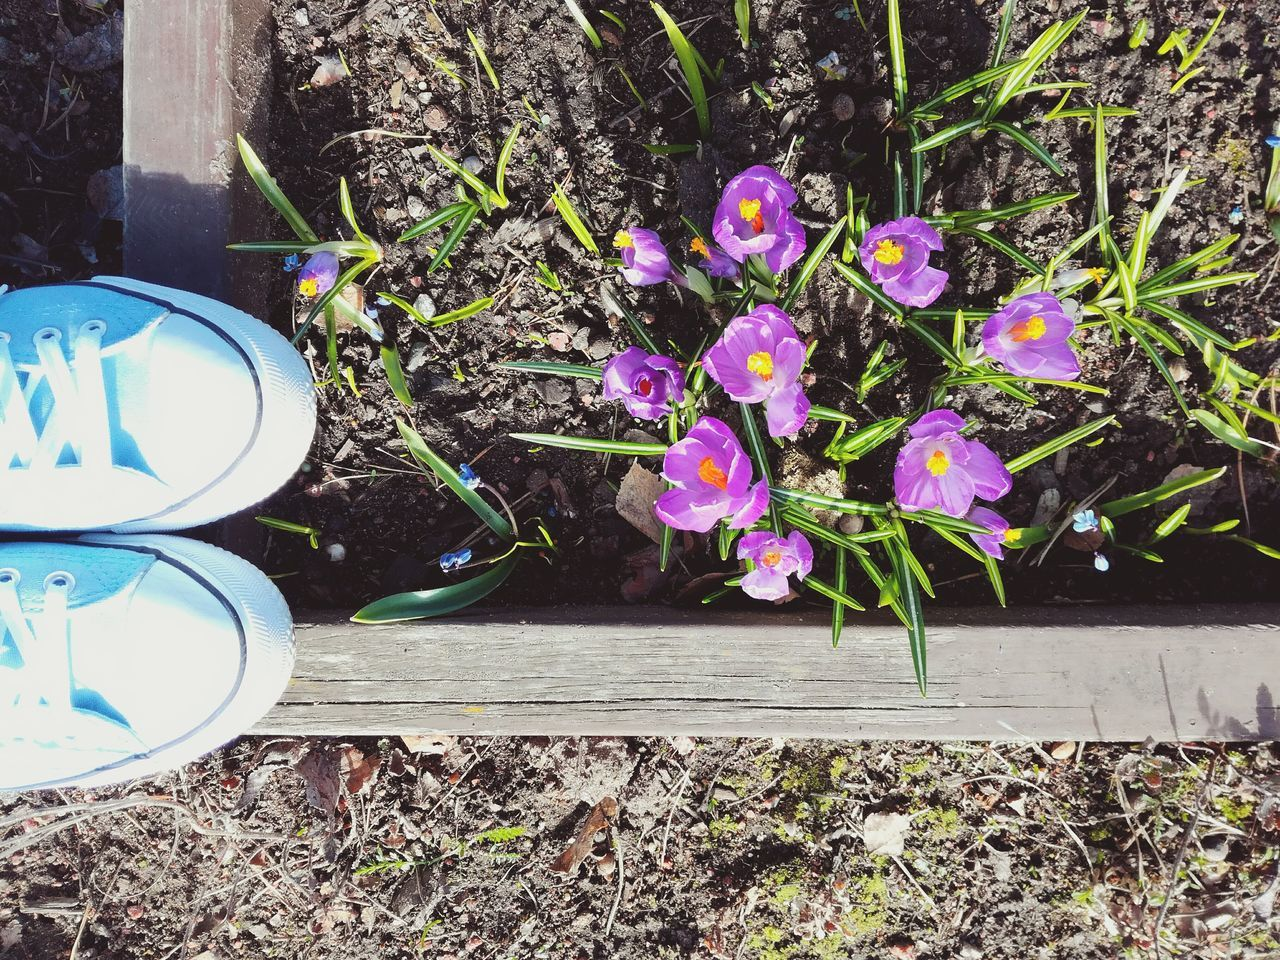 Outdoors High Angle View Flower Nature Close-up Sneakers Springtime Sunny Morning Crocus Flower Feet Ground